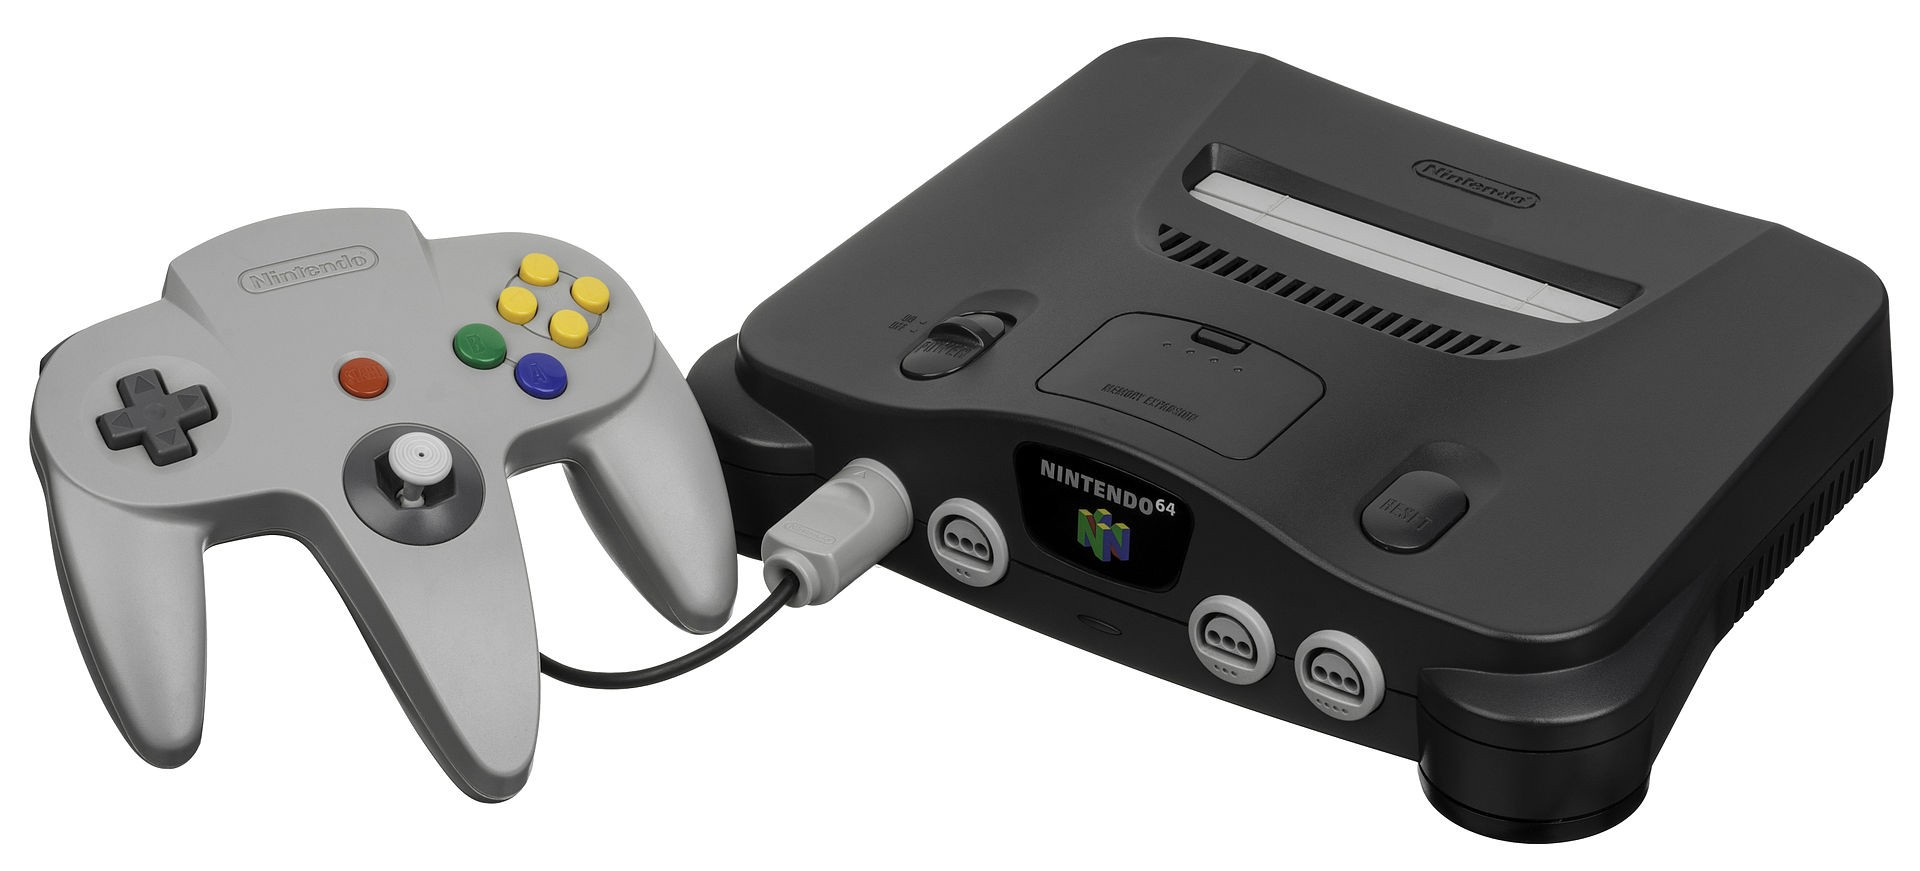 Here Are The Must Have Games and Features For the N64 Classic